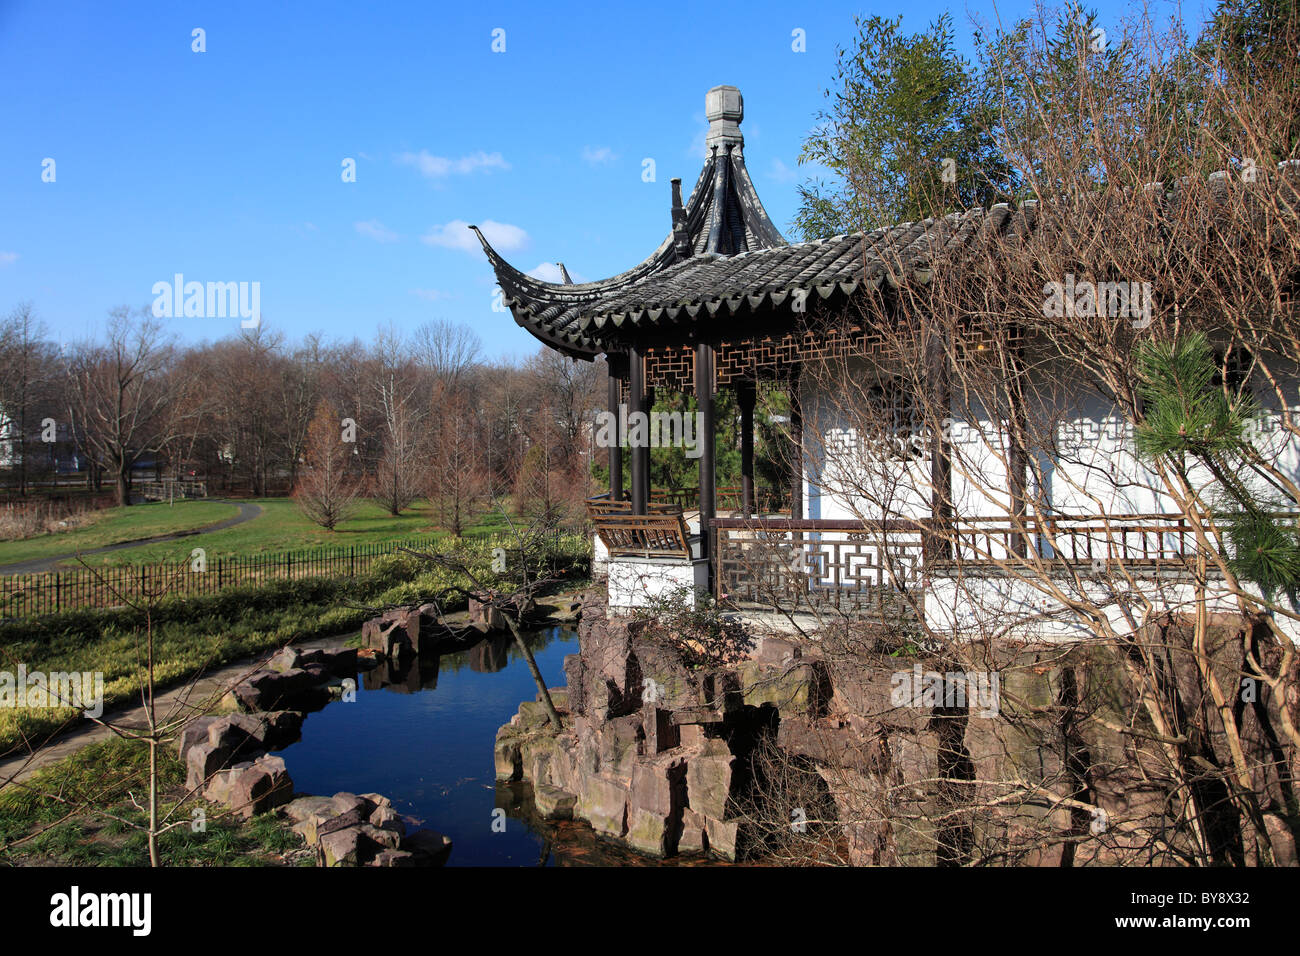 Chinese Scholar's Garden, Snug Harbor Cultural Center and Botanical Garden, Richmond Terrace, Staten Island, New - Stock Image